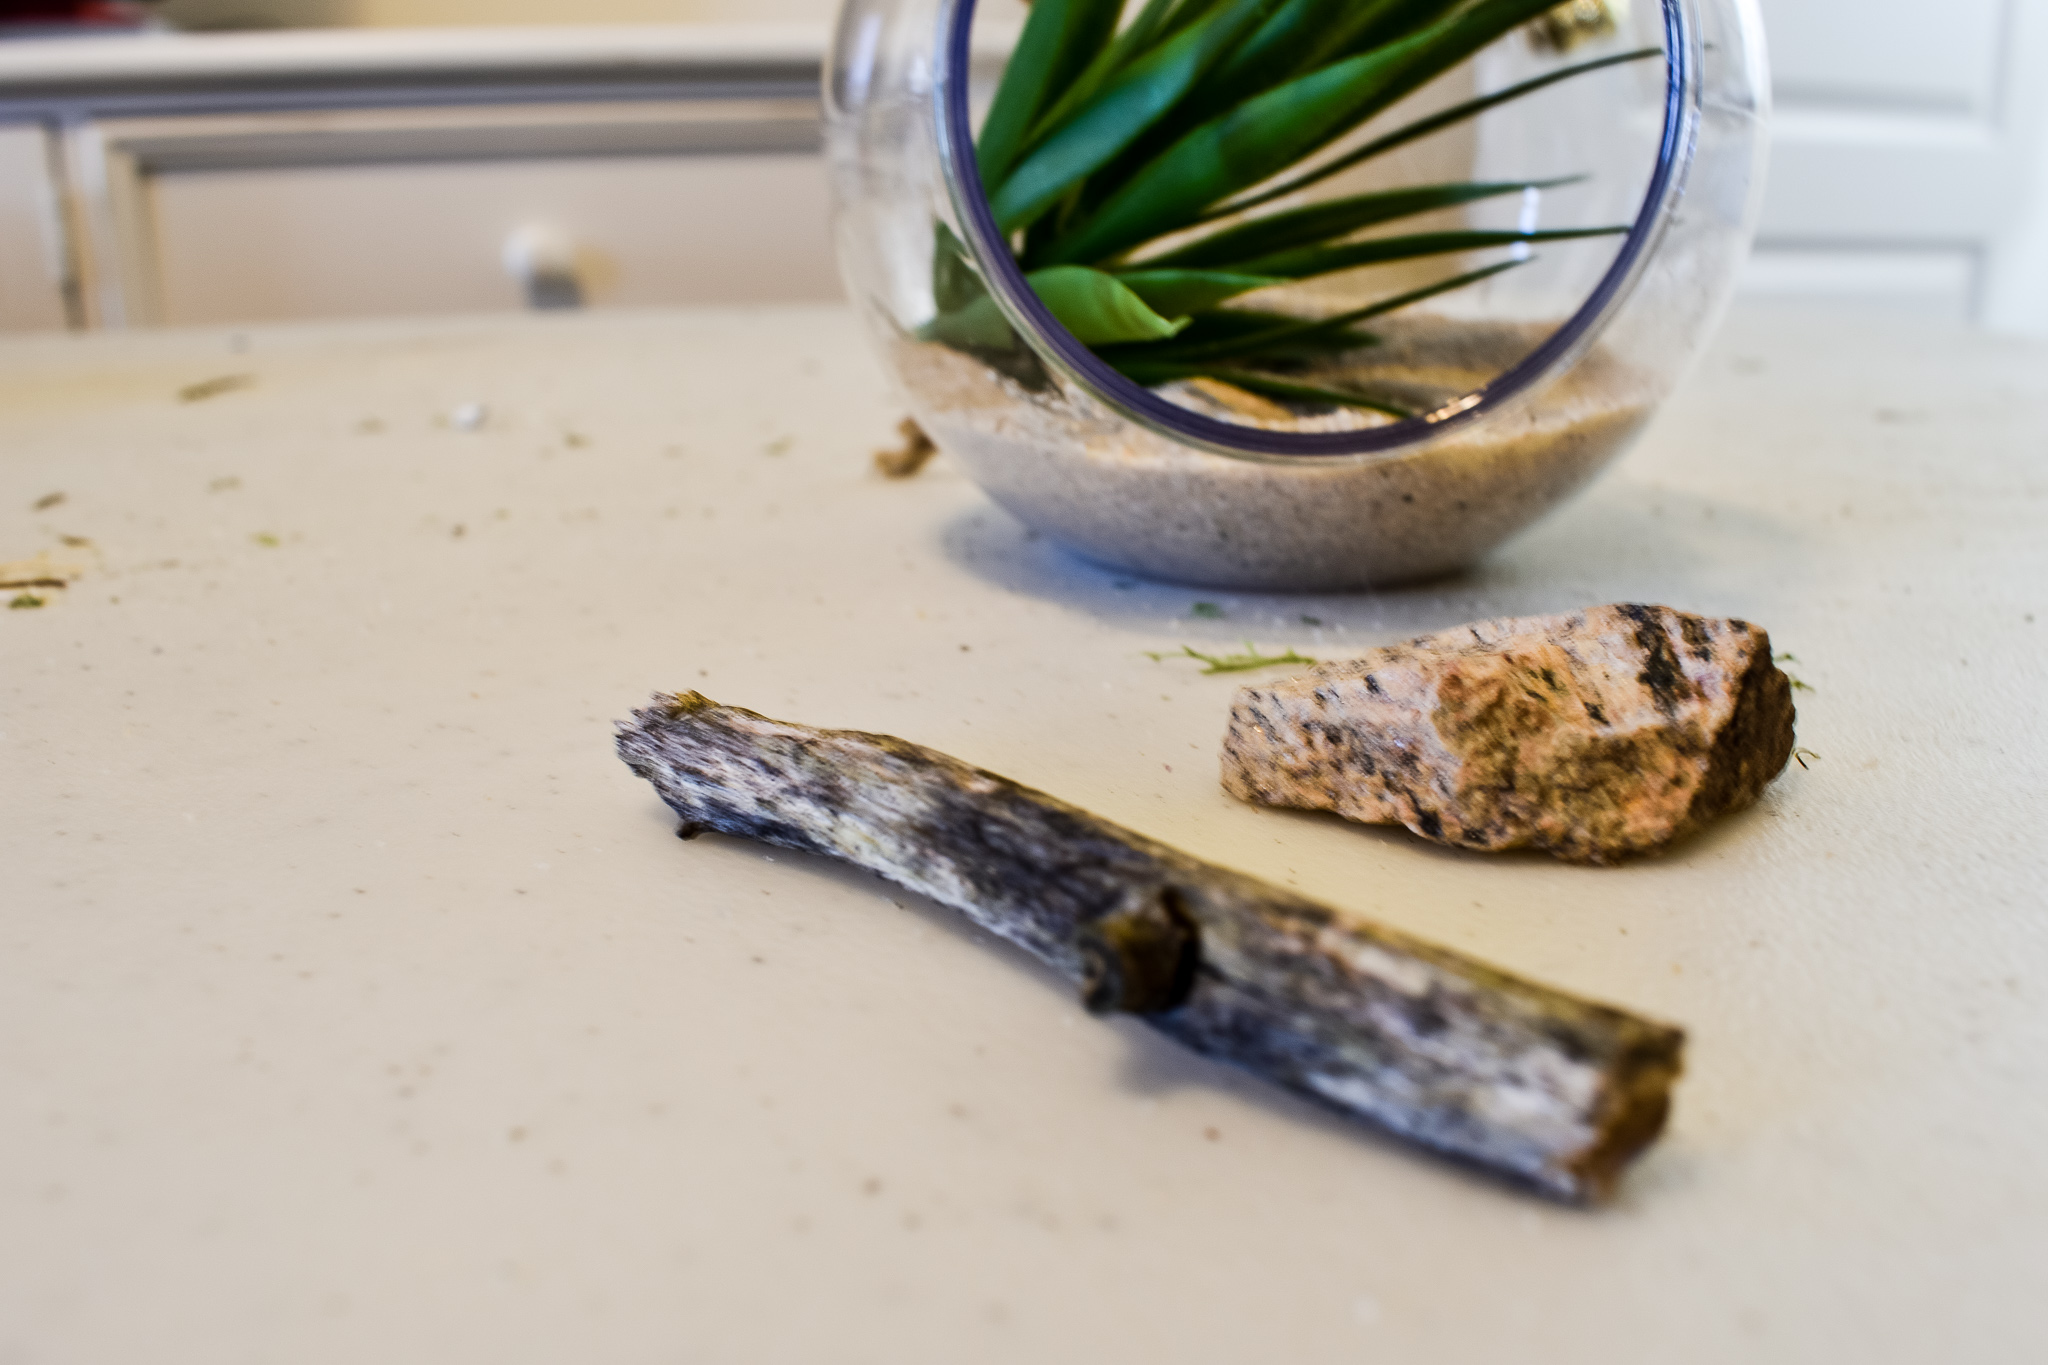 a twig and rock to place inside terrarium with sand and a faux succulent